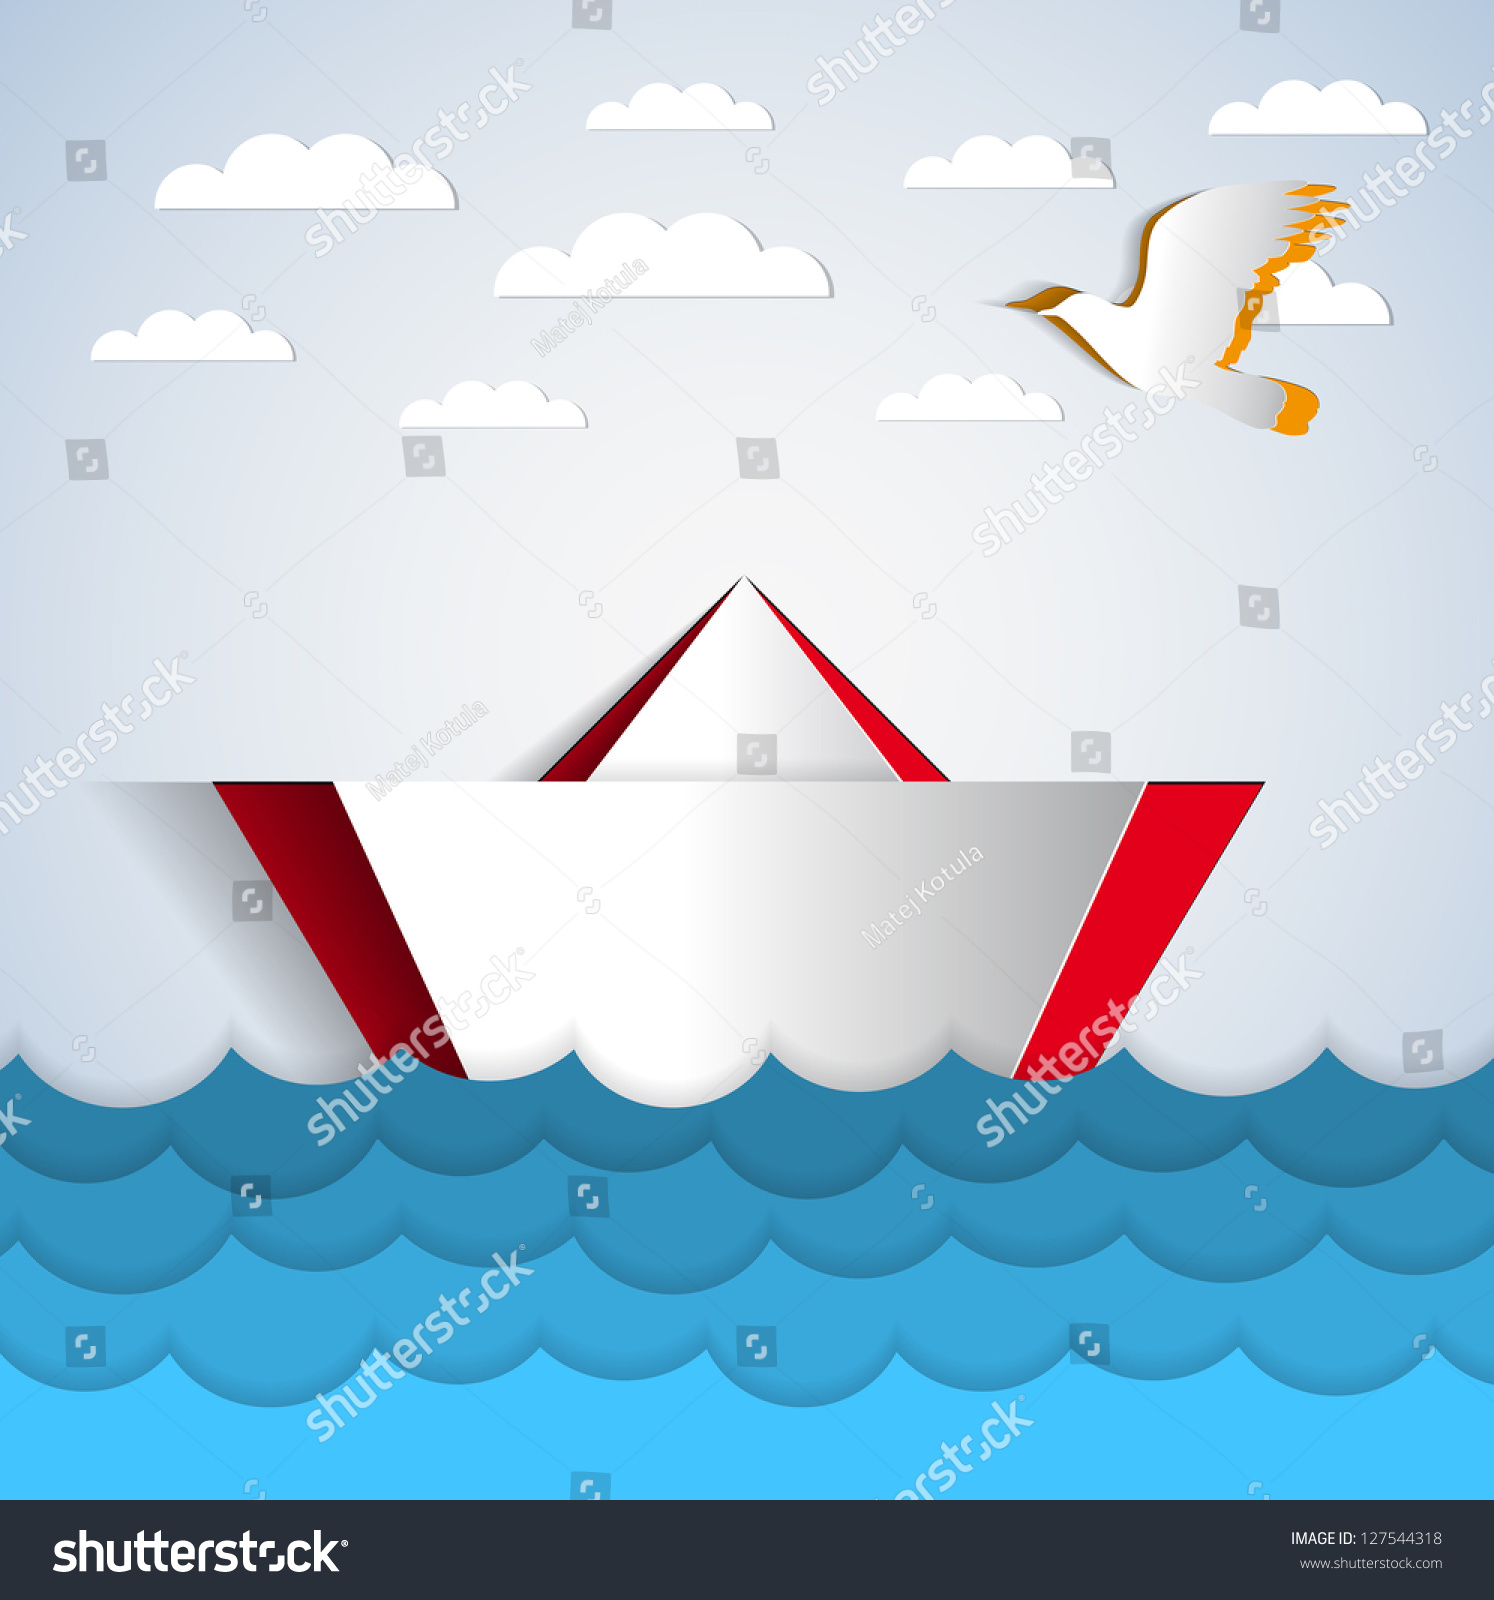 Floating and so much water essay